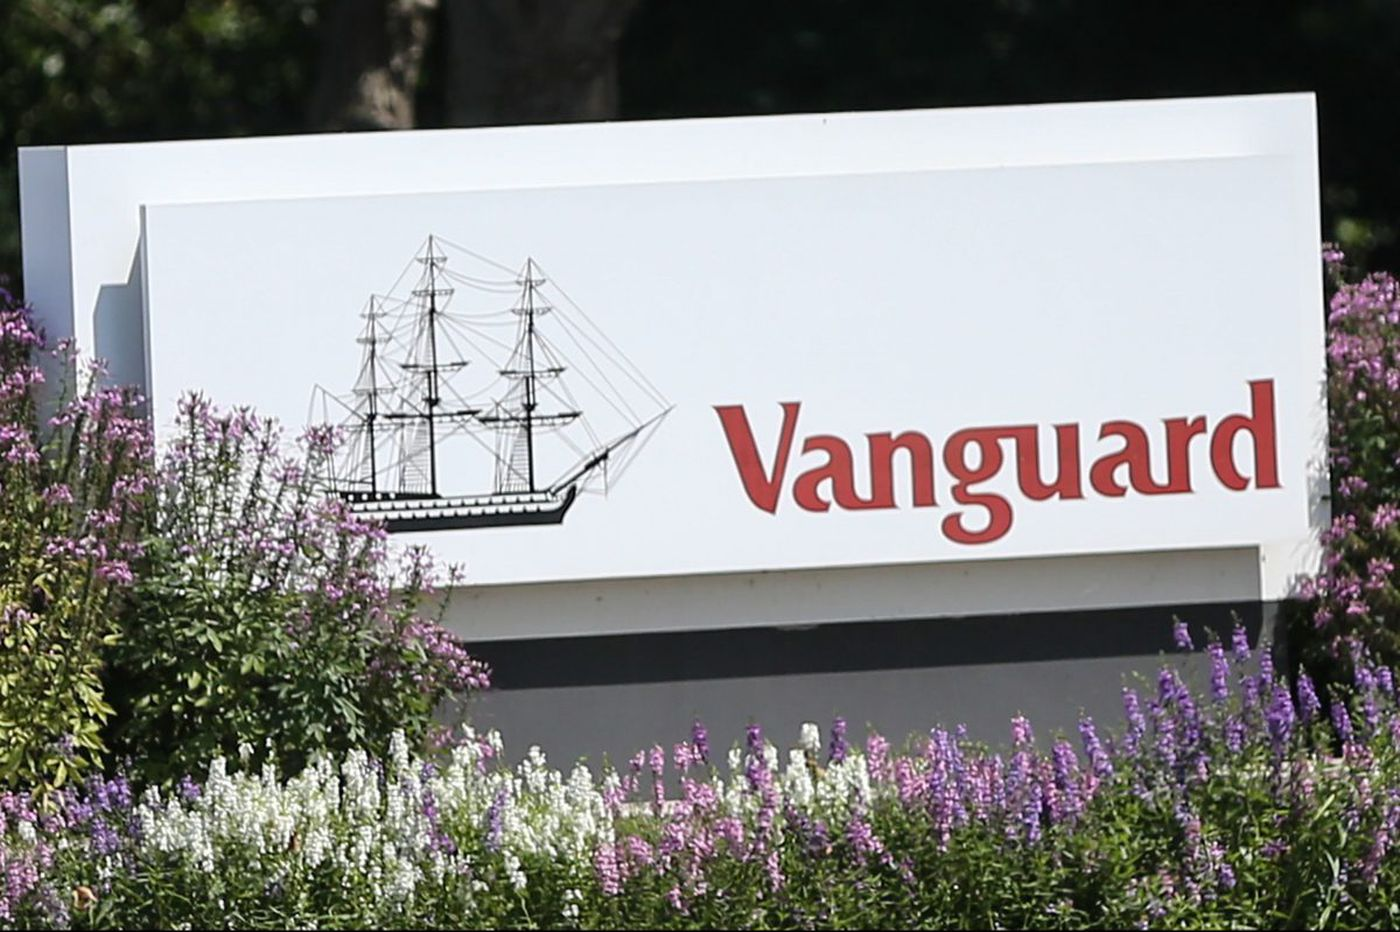 Vanguard, approaching $5 trillion, corrects account reports